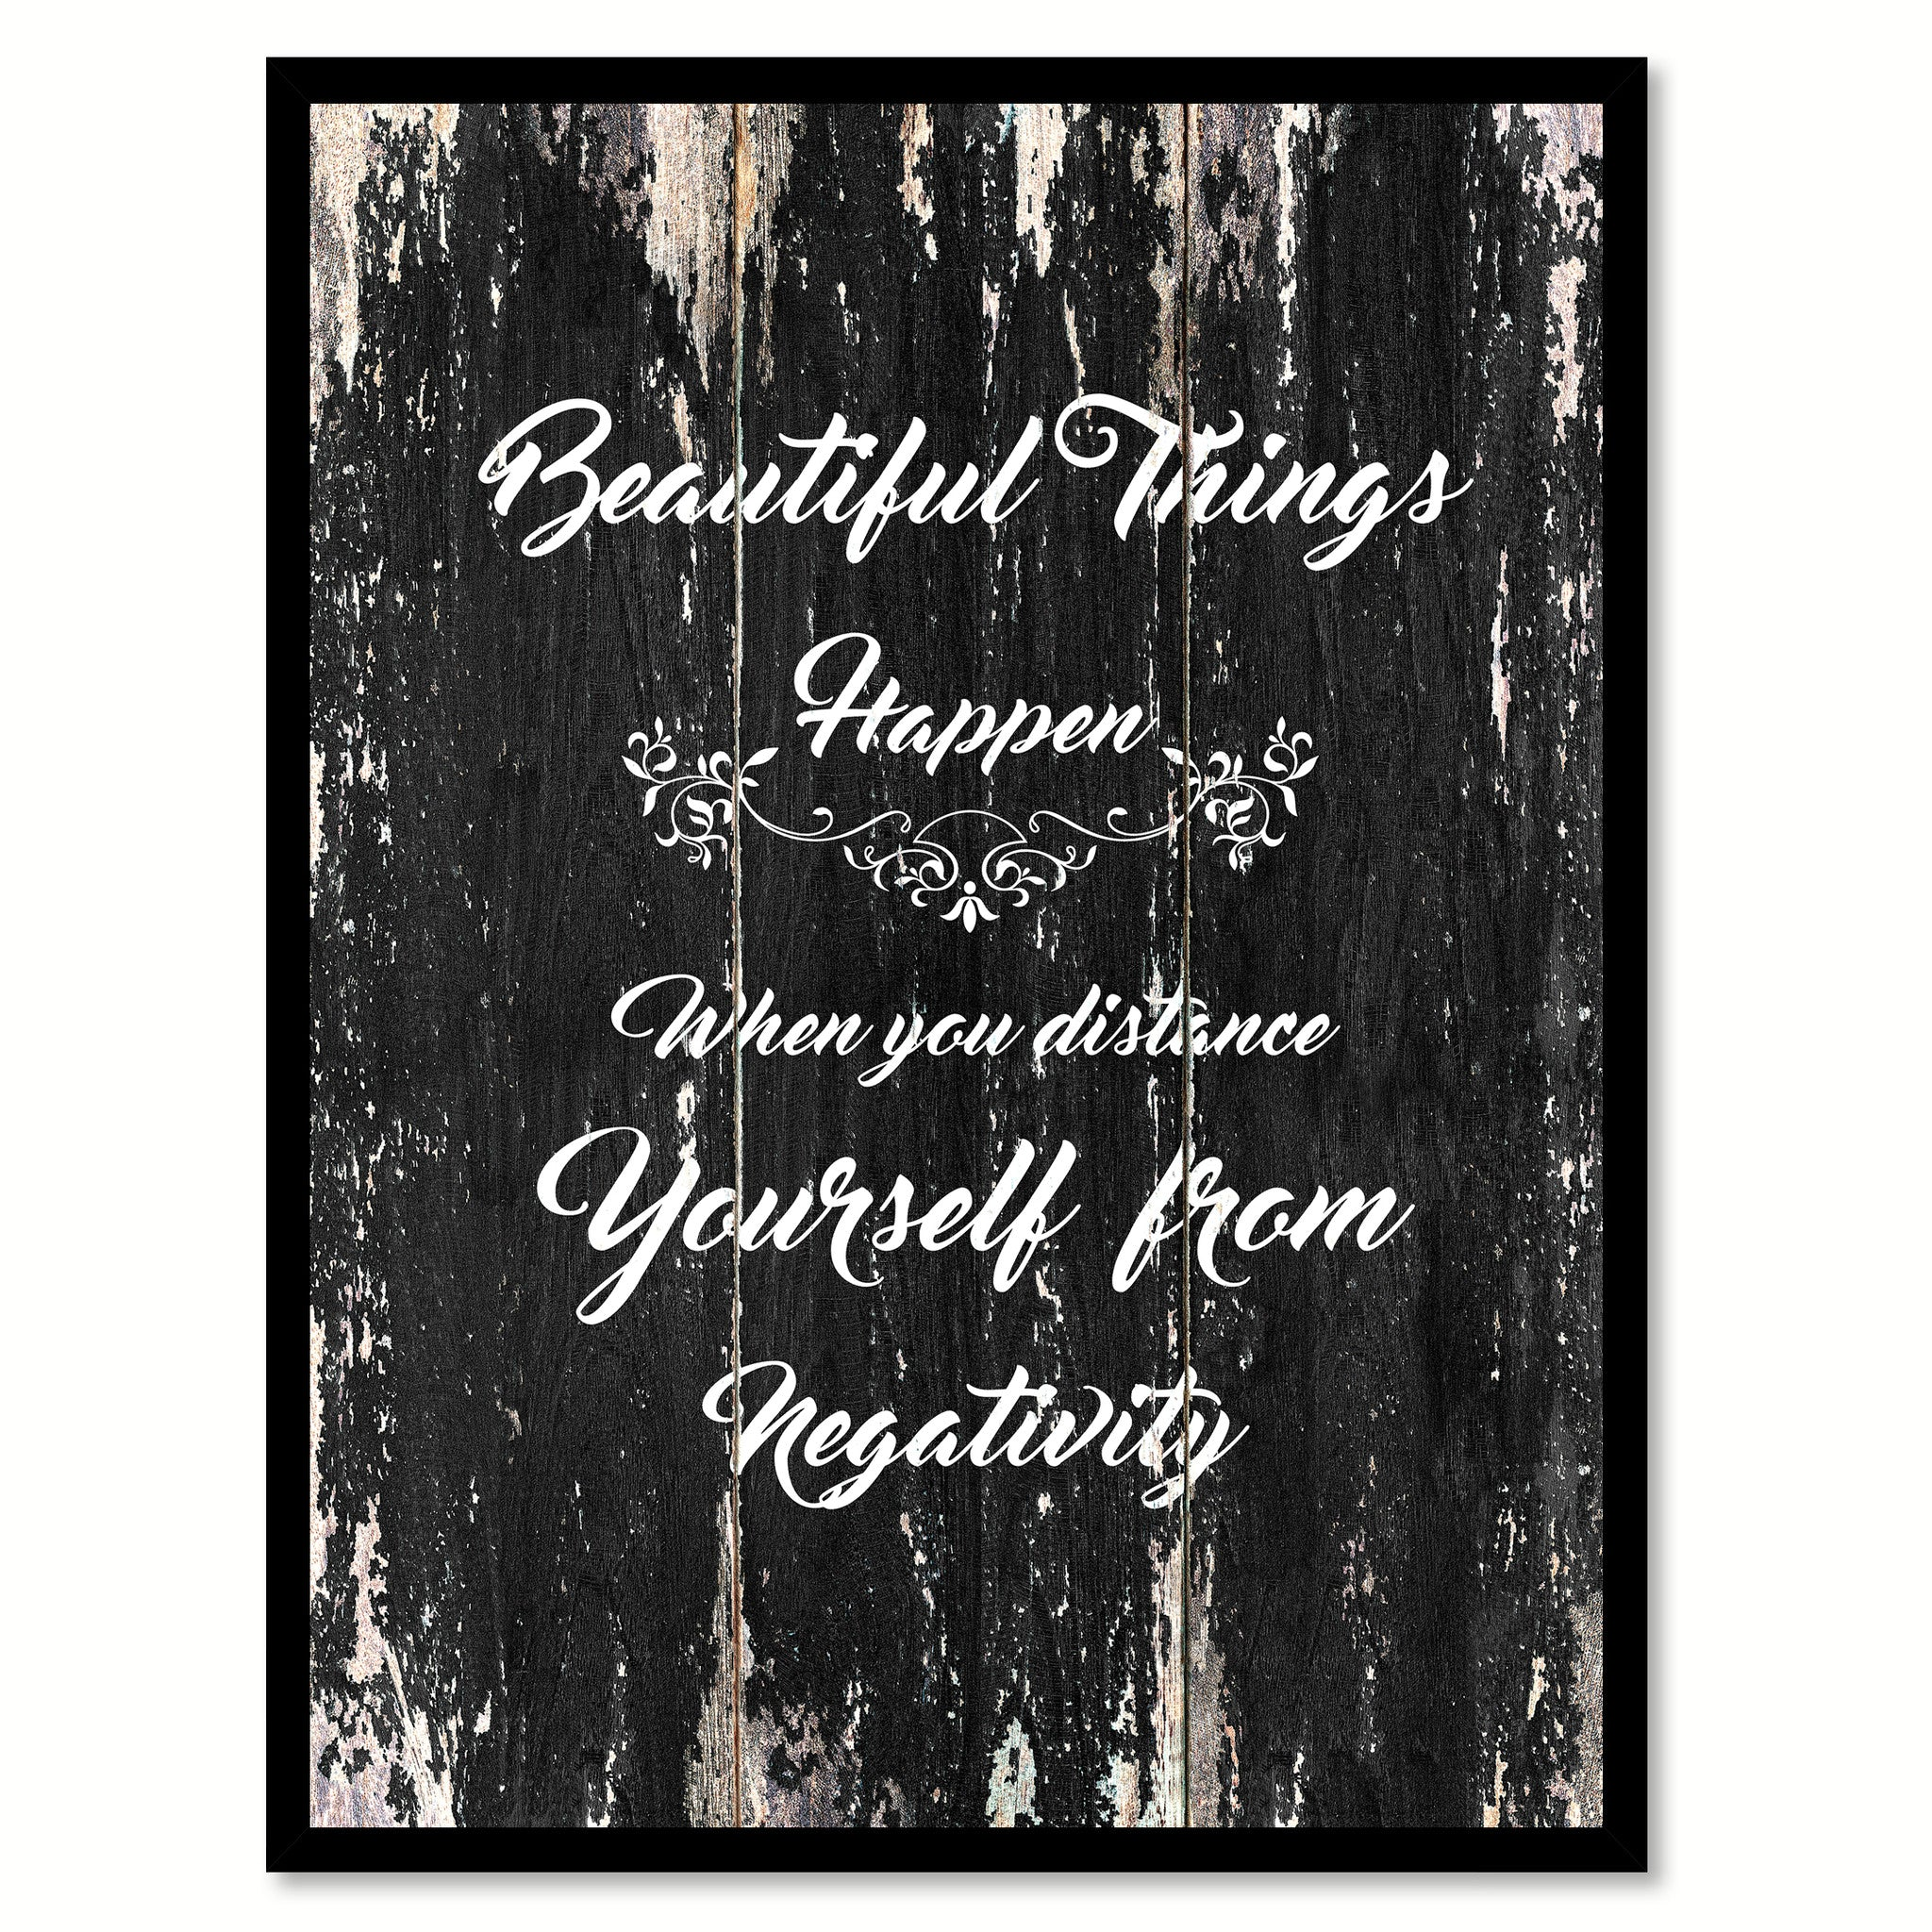 Beautiful things happen when you distance yourself from negativity Motivational Quote Saying Canvas Print with Picture Frame Home Decor Wall Art